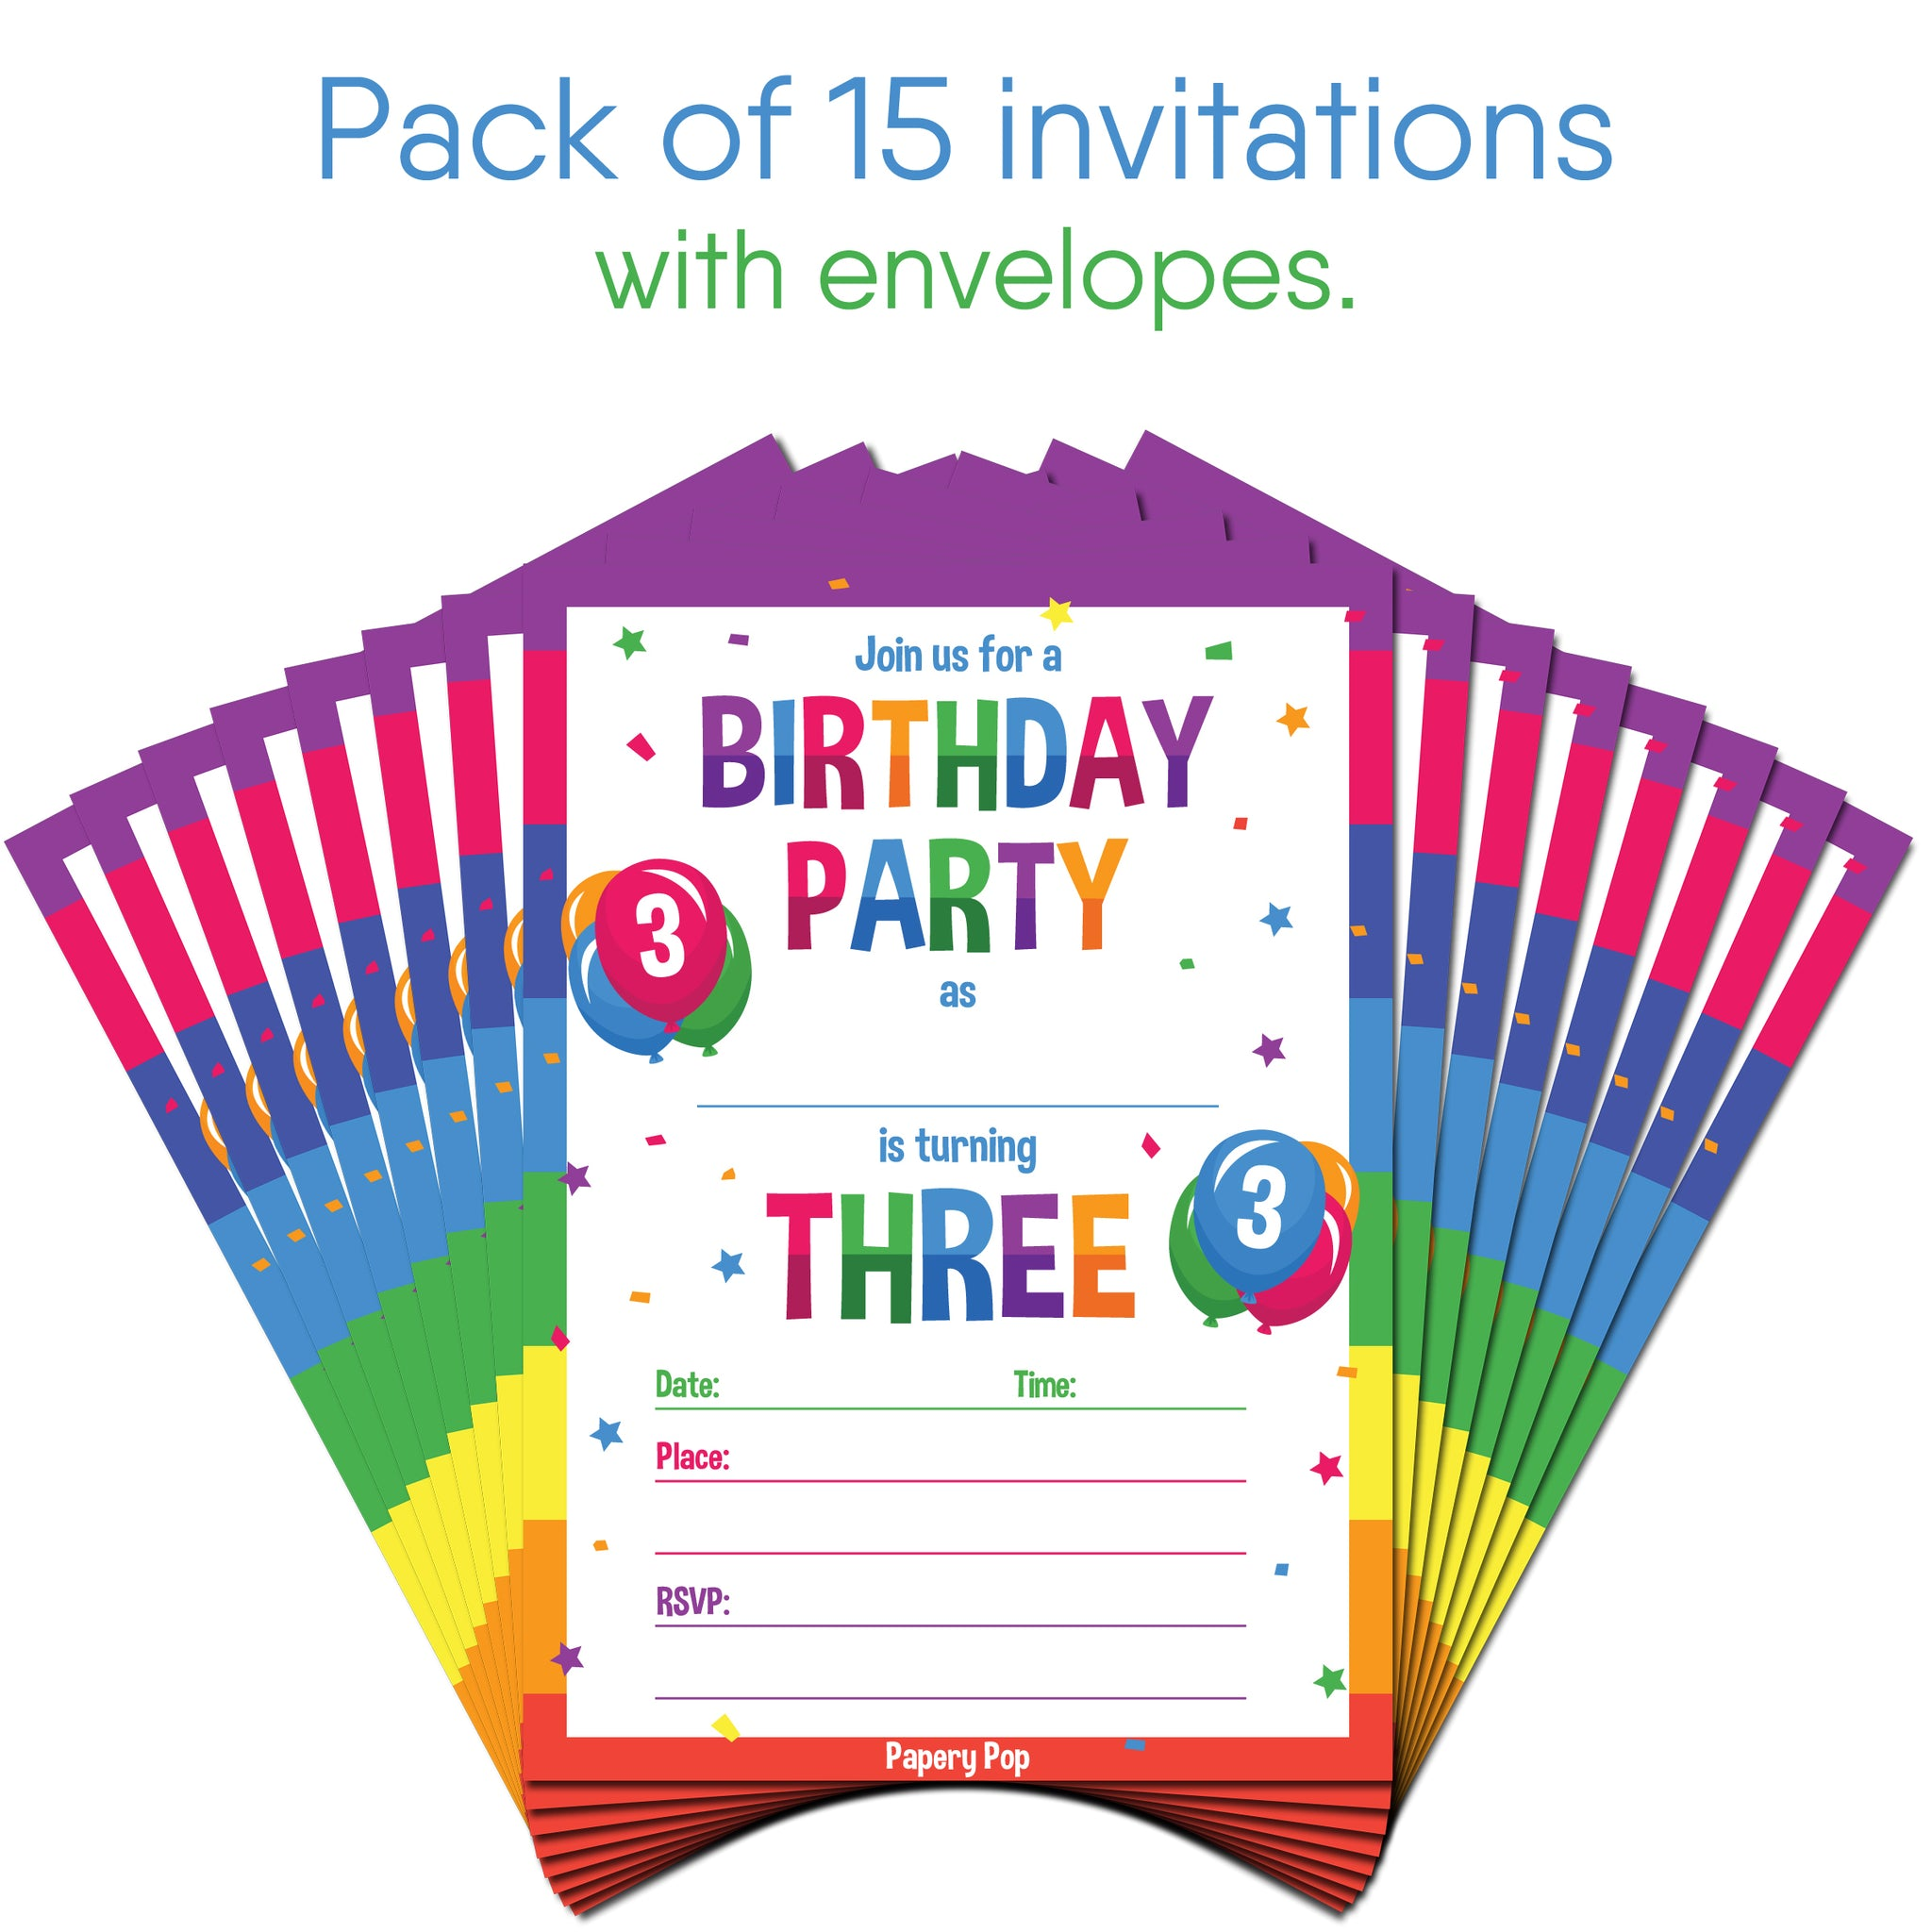 3 Year Old Birthday Party Invitations with Envelopes (15 Count ...